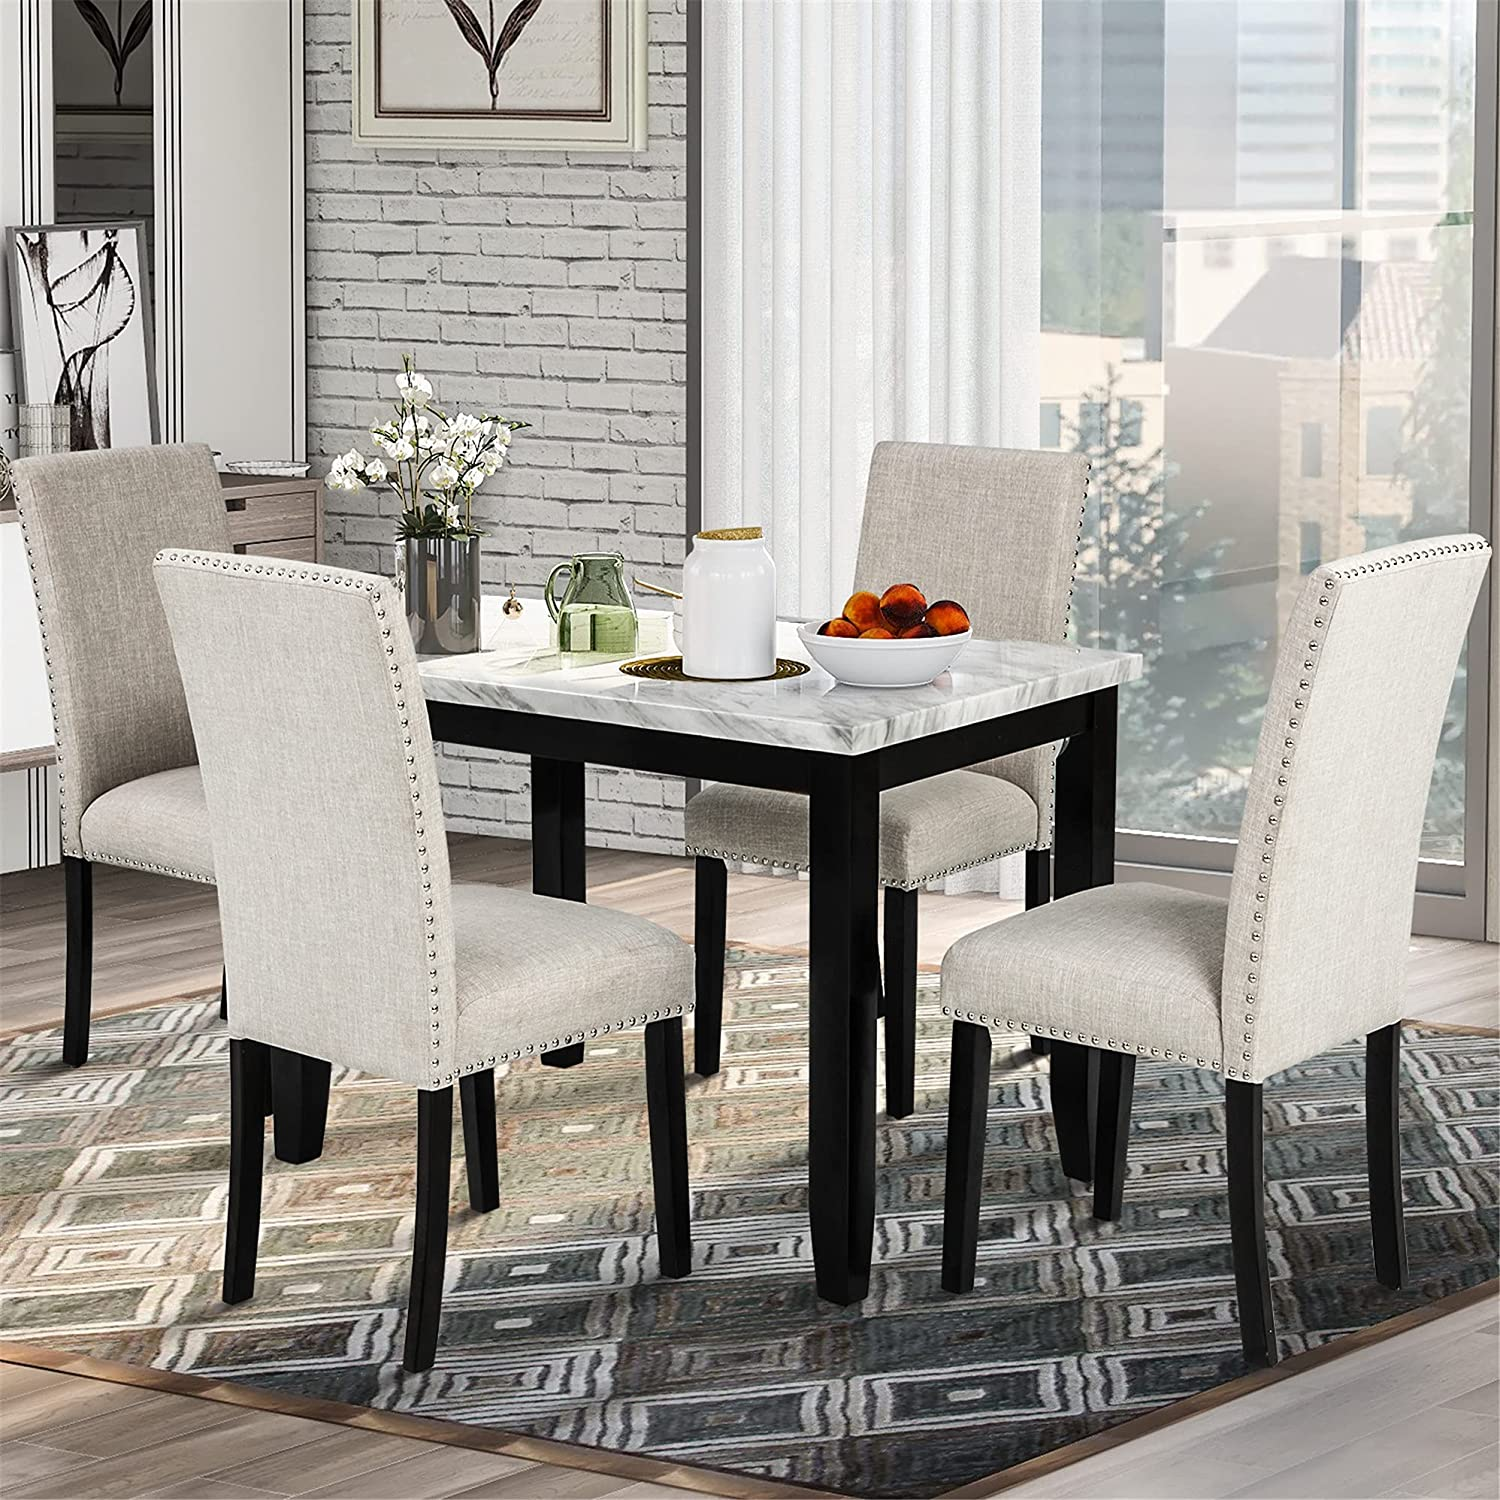 Animer and price revision 5-Piece Dining Table Set 4 Rectangular with Thicke Fashion